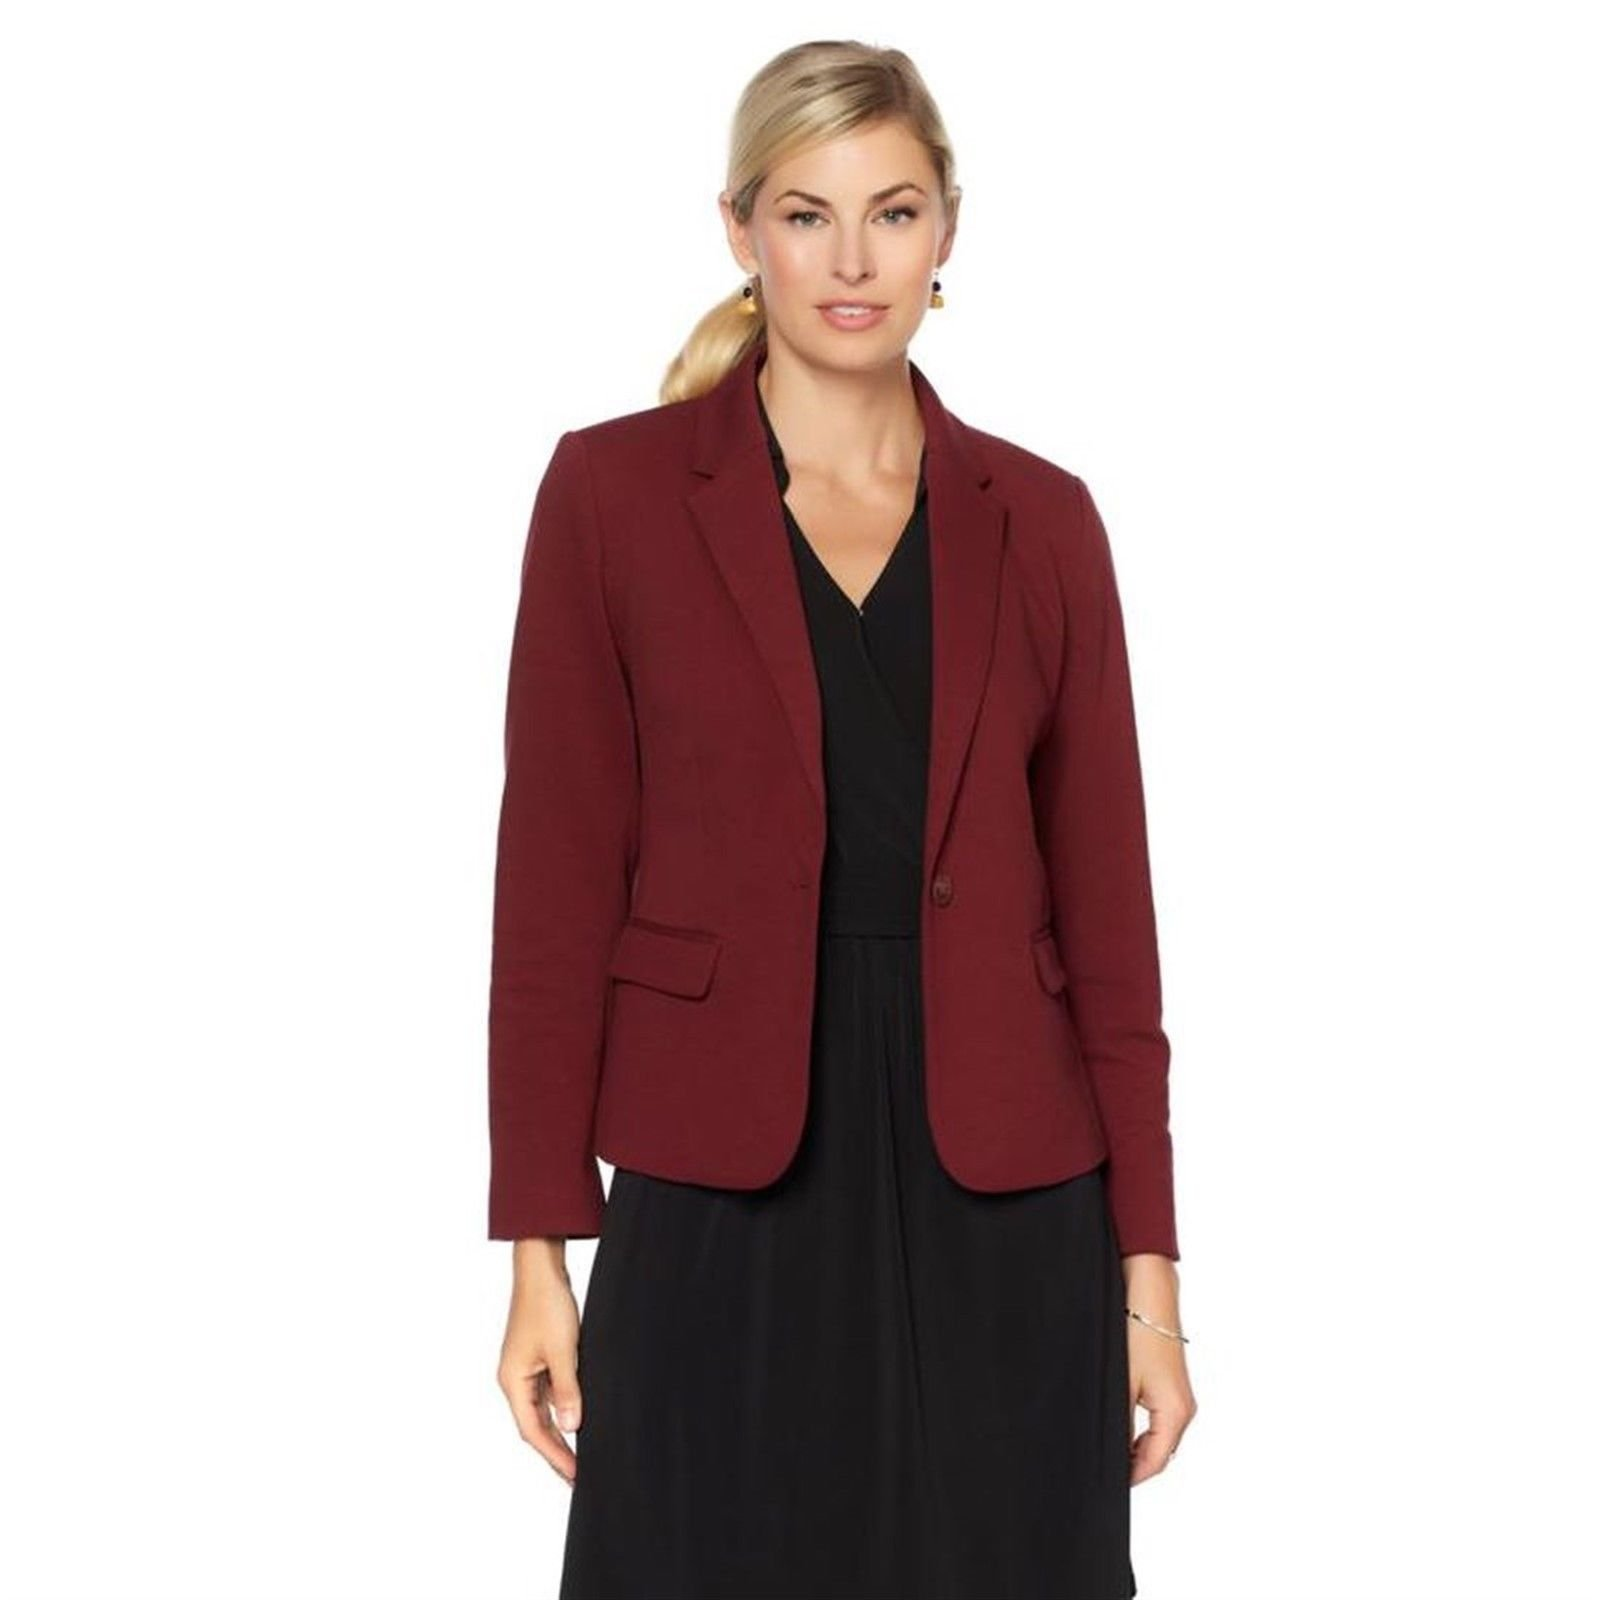 Samantha Brown Travel Security Blazer RFID Pocket 572-040, Burgundy, M